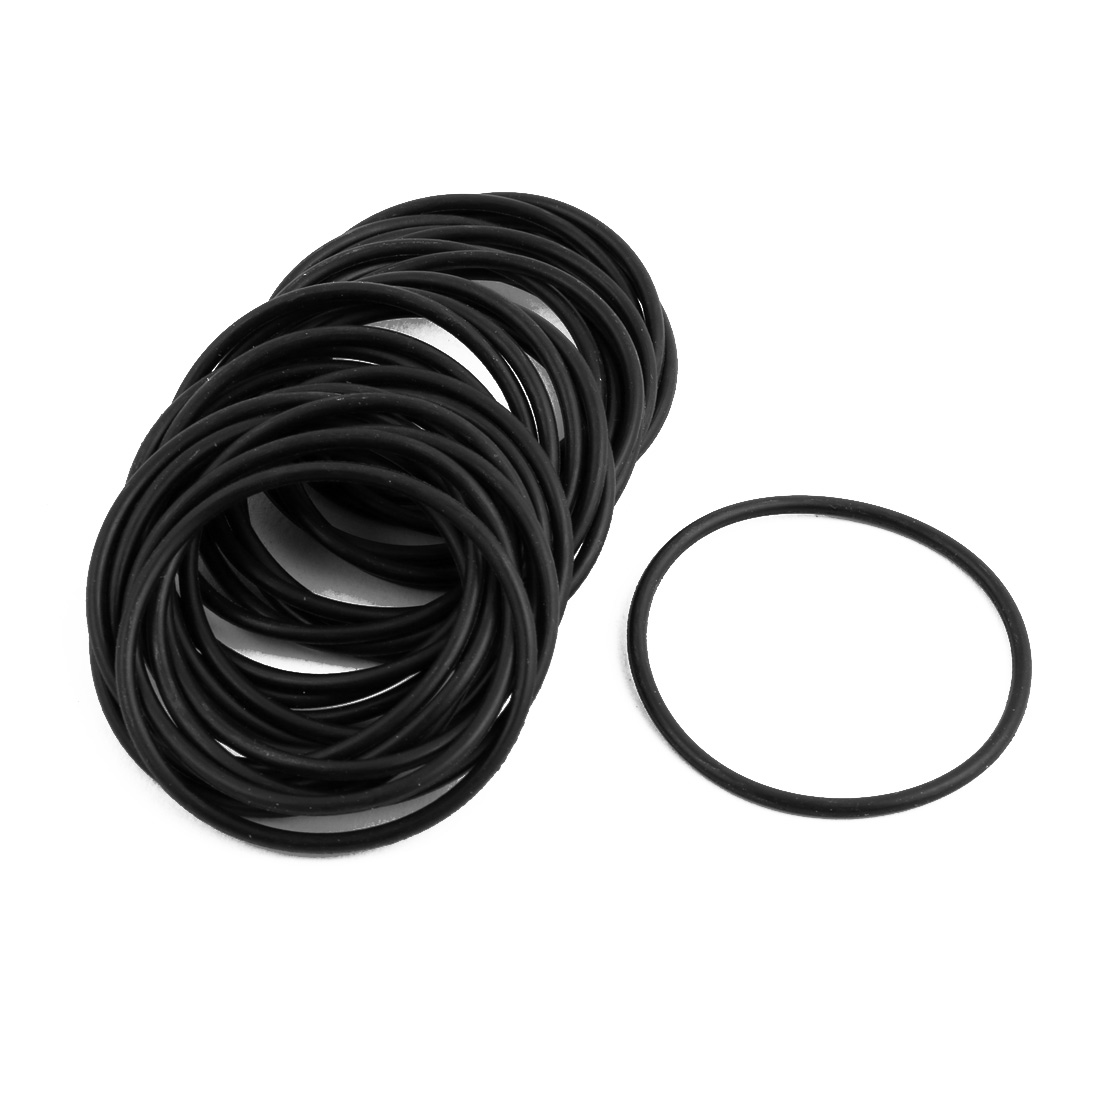 30Pcs Black 41mm Dia 2mm Thickness Flexible Rubber O Ring NBR Sealing Grommets